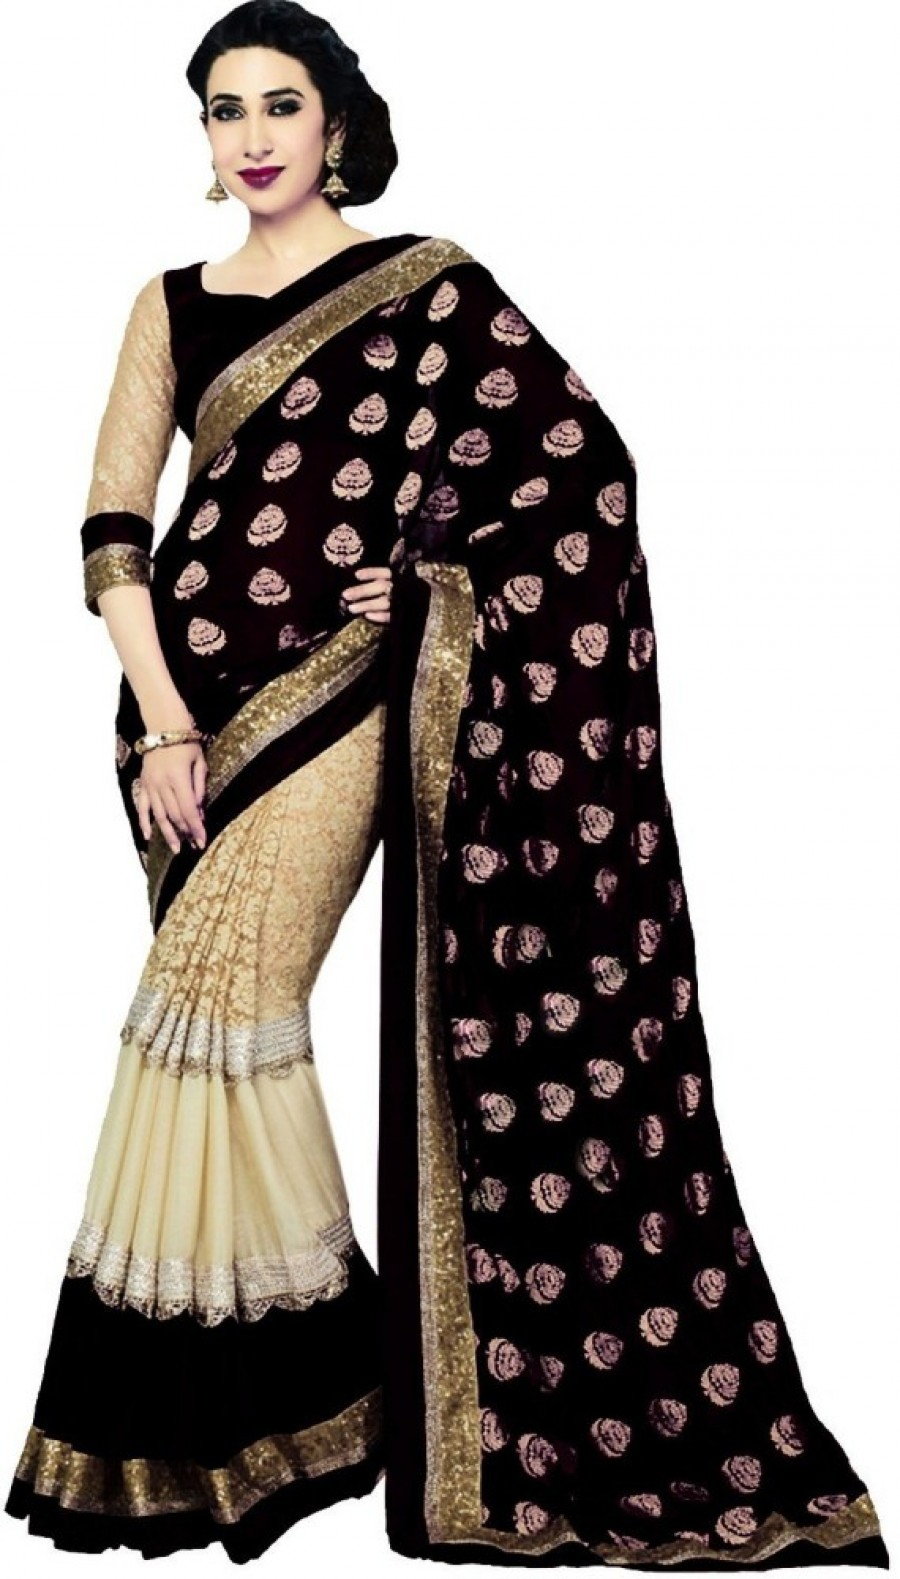 Buy Anuraag Self Design Fashion Viscose Sari Online